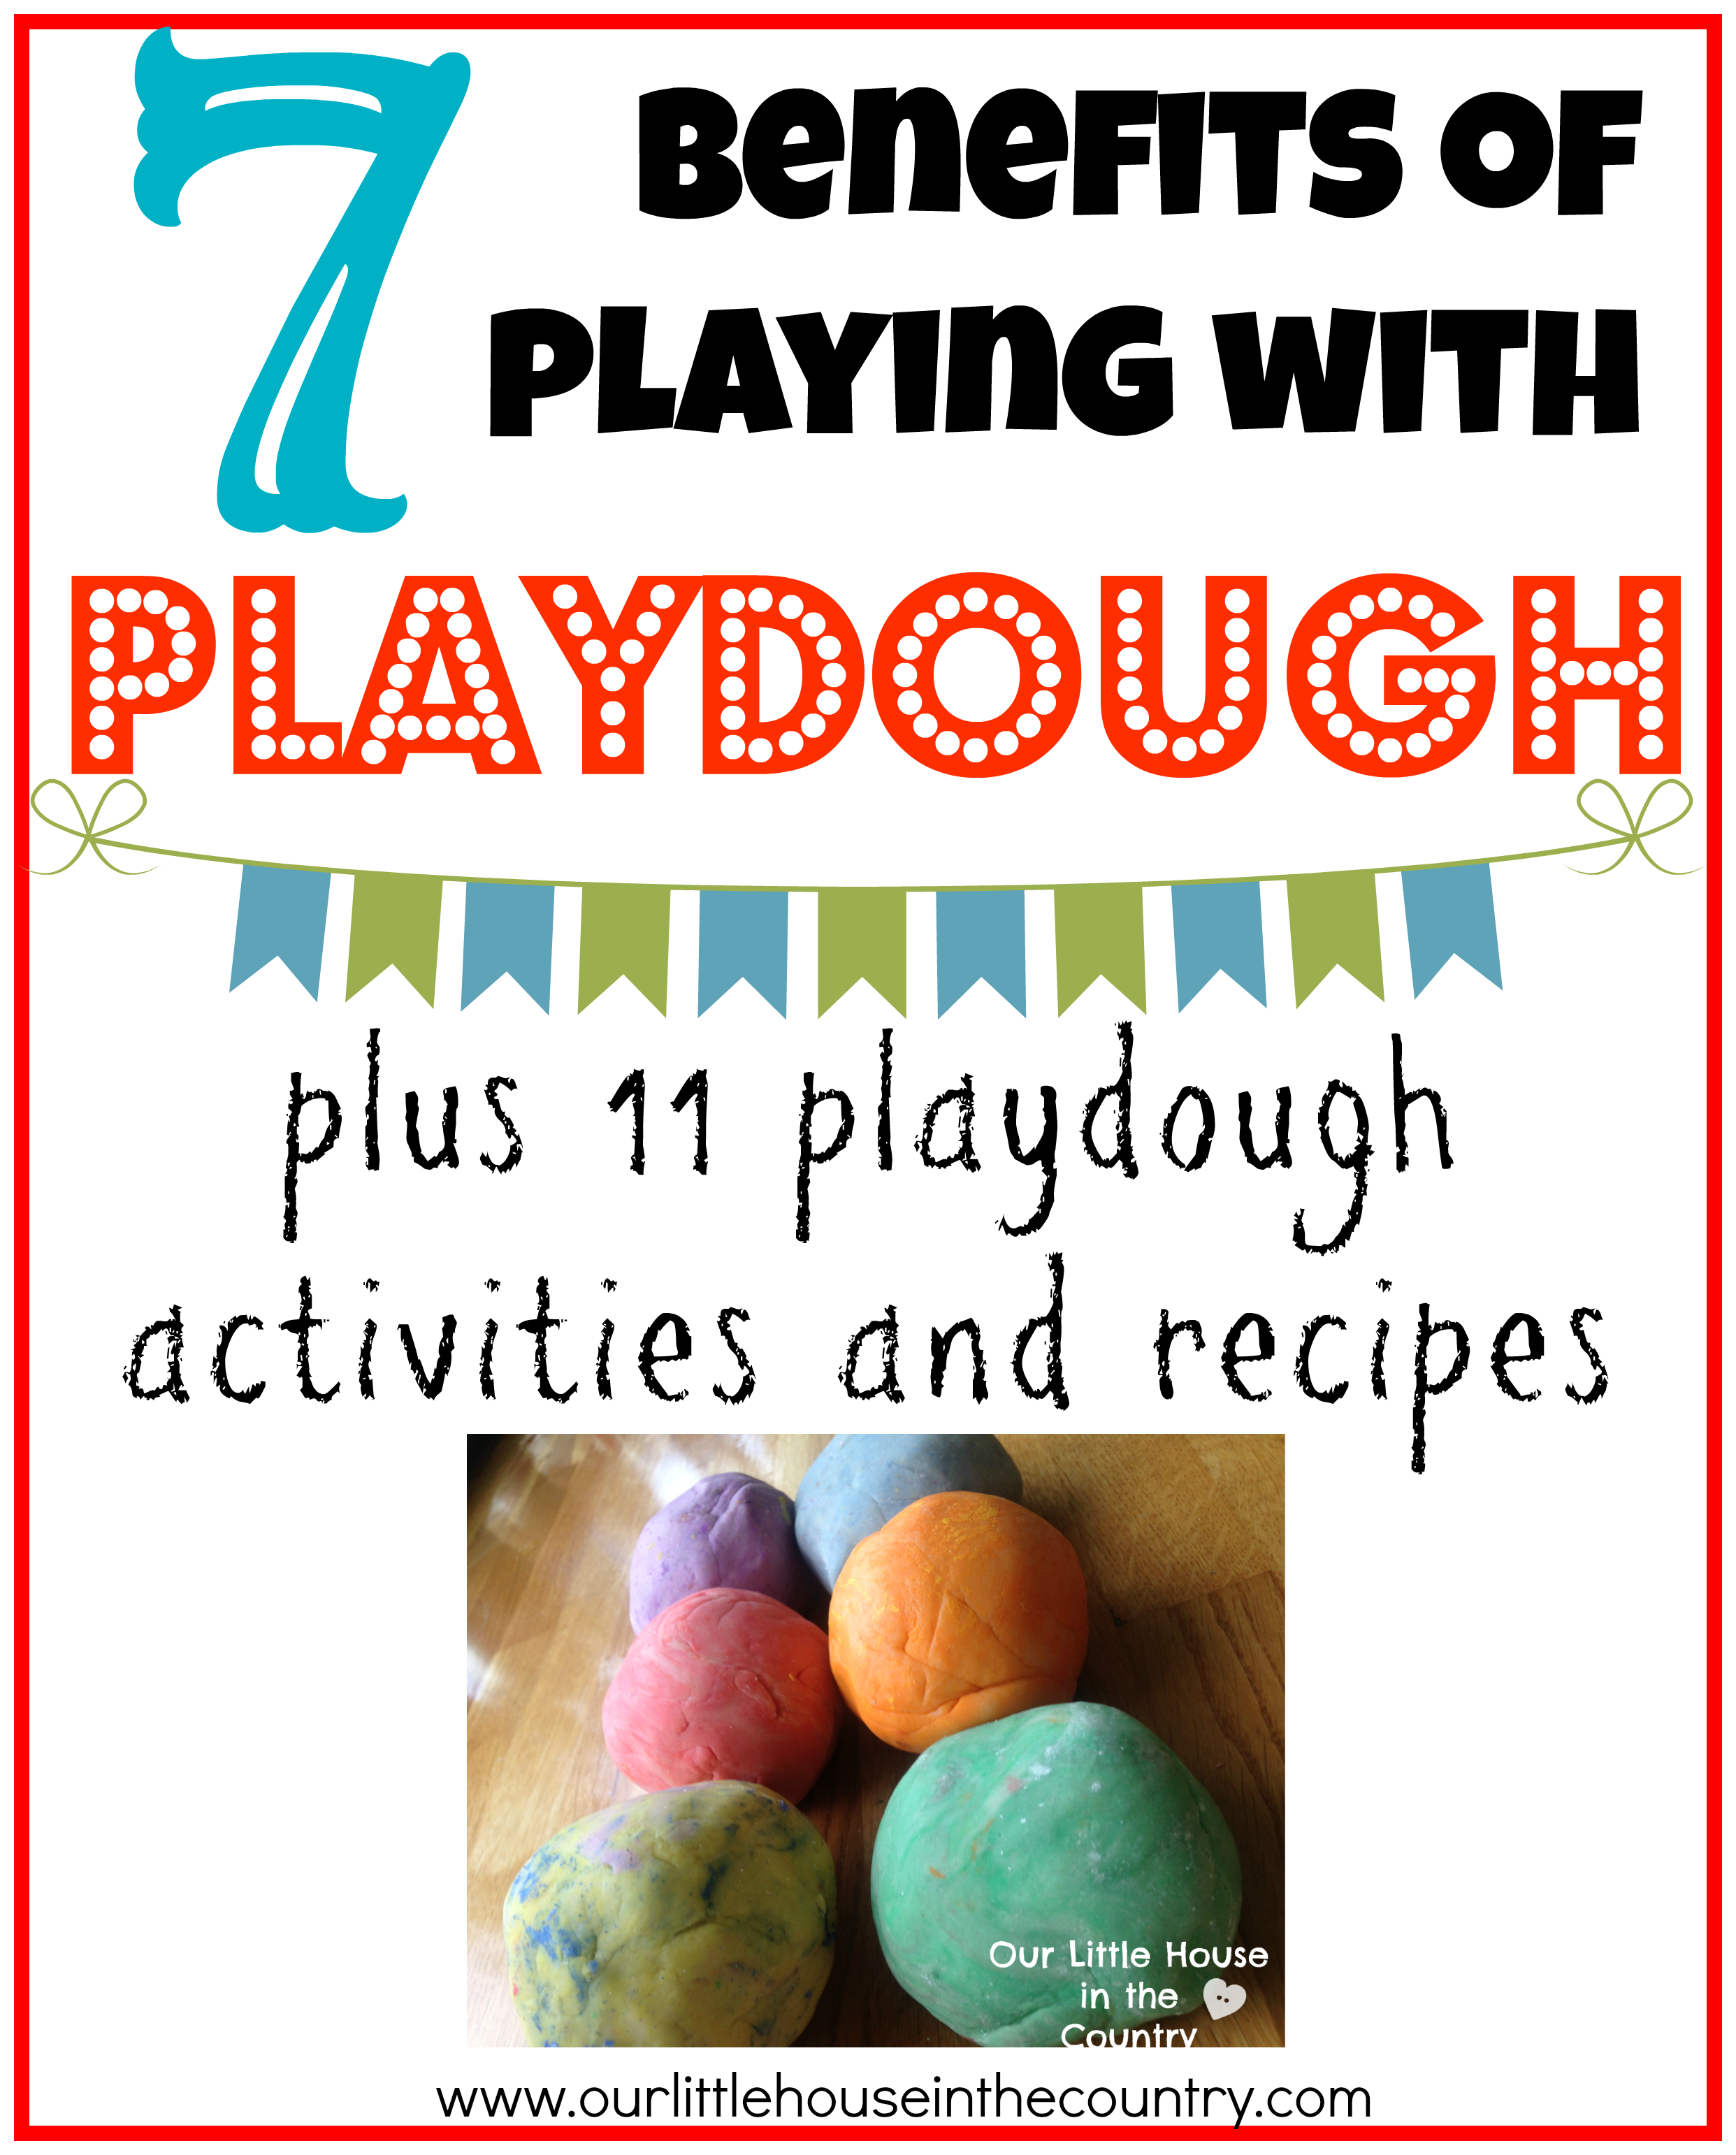 The Benefits Of Playing With Playdough Plus 11 Activities And Recipes